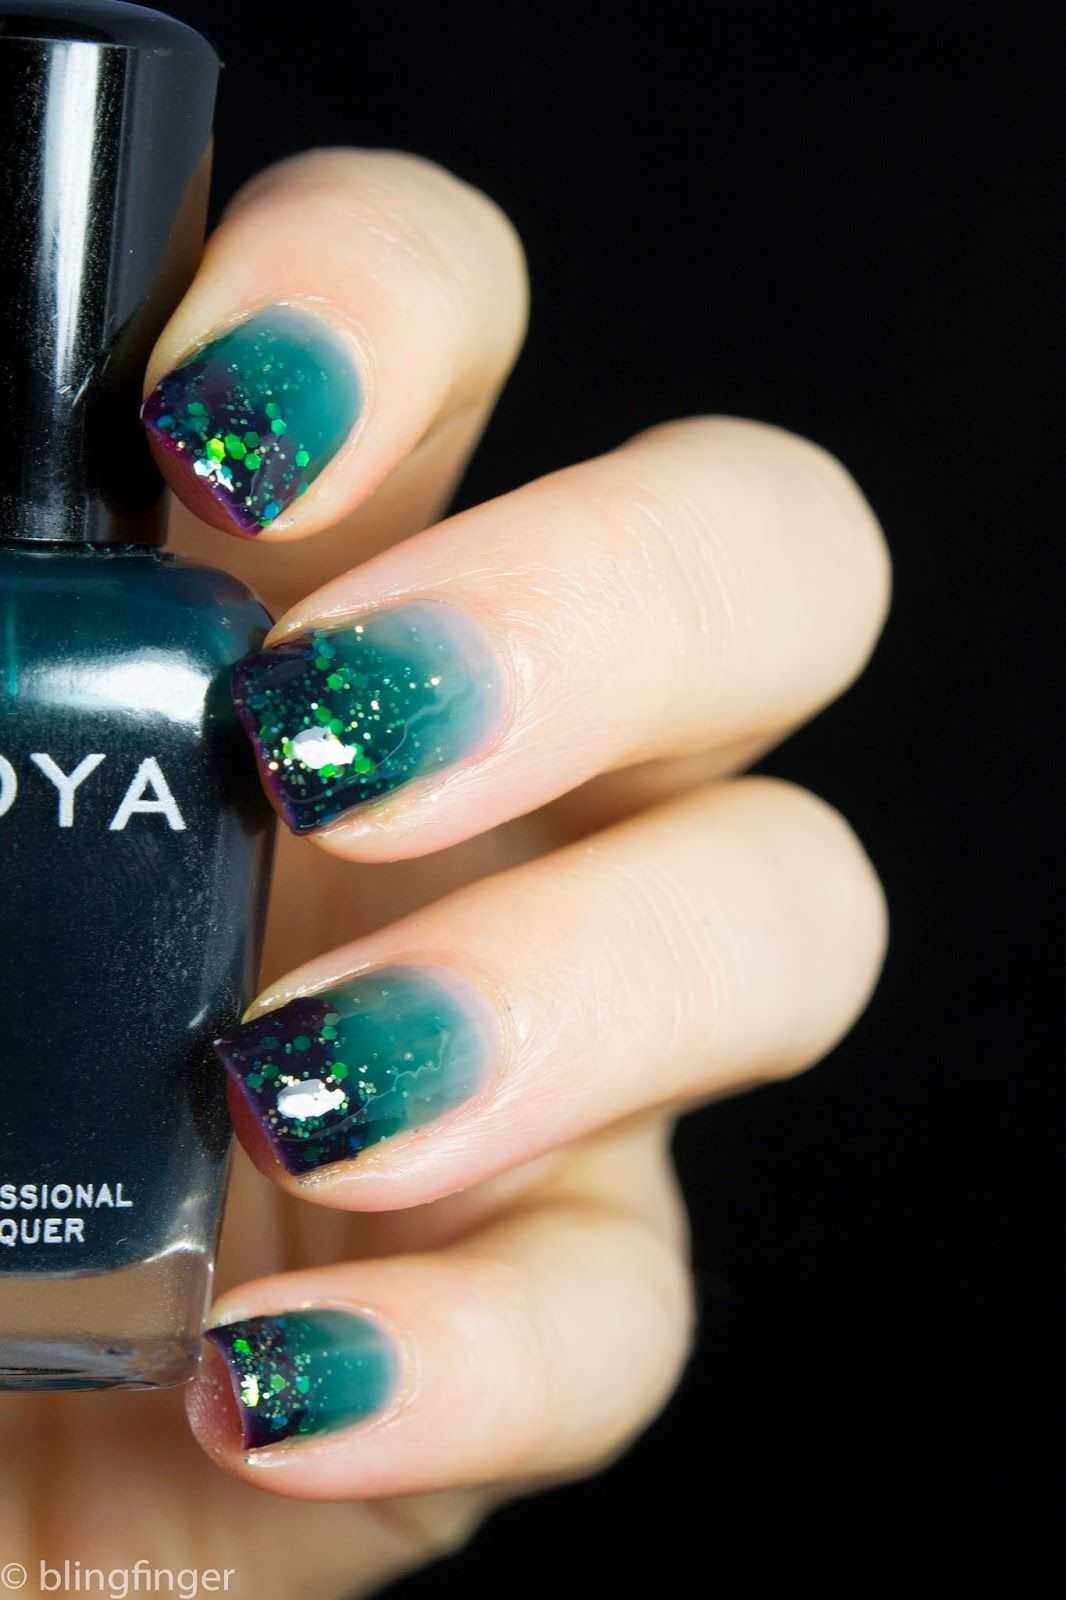 Teal Jelly Gradient with Glitter Tips (Blingfinger) | Teal, Makeup ...